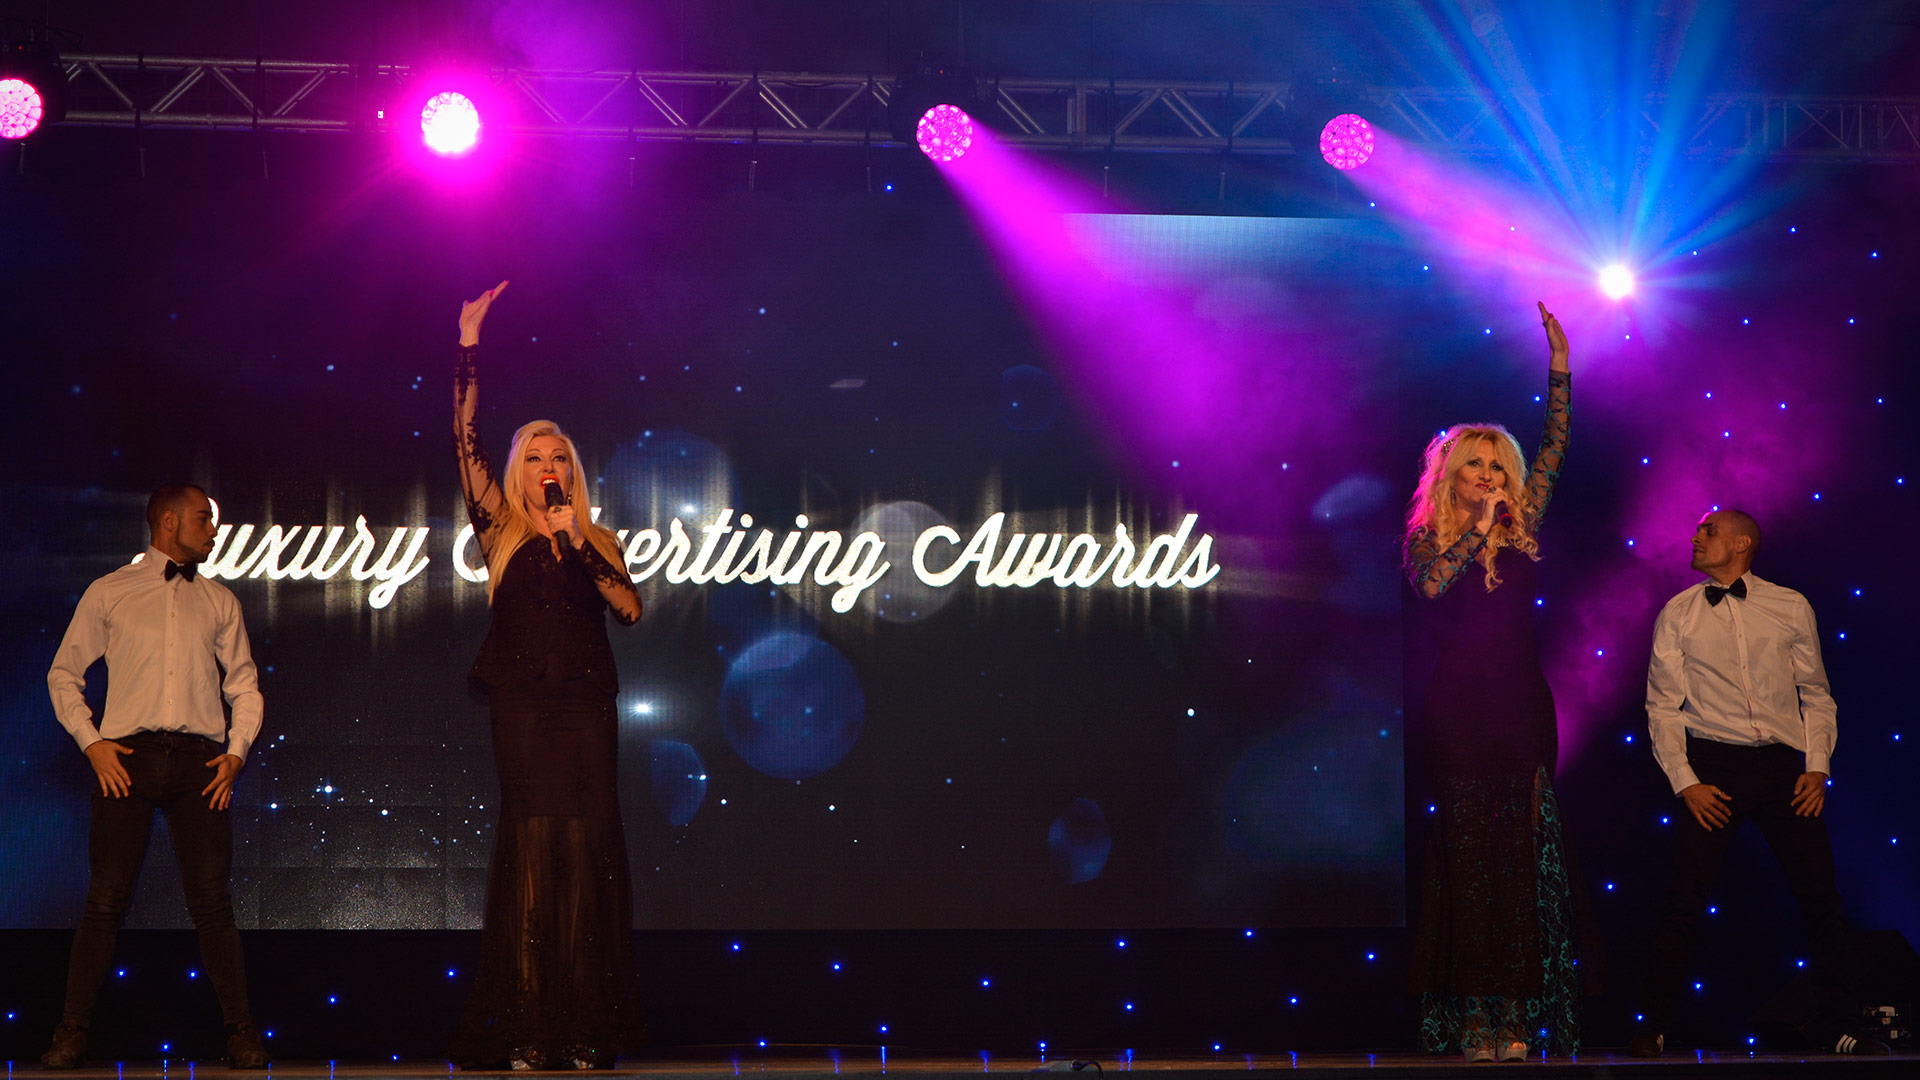 Ana & Antonella singing Marbella Nights with 2 dancers at Luxury Advertising Awards - www.arianasoffici.com